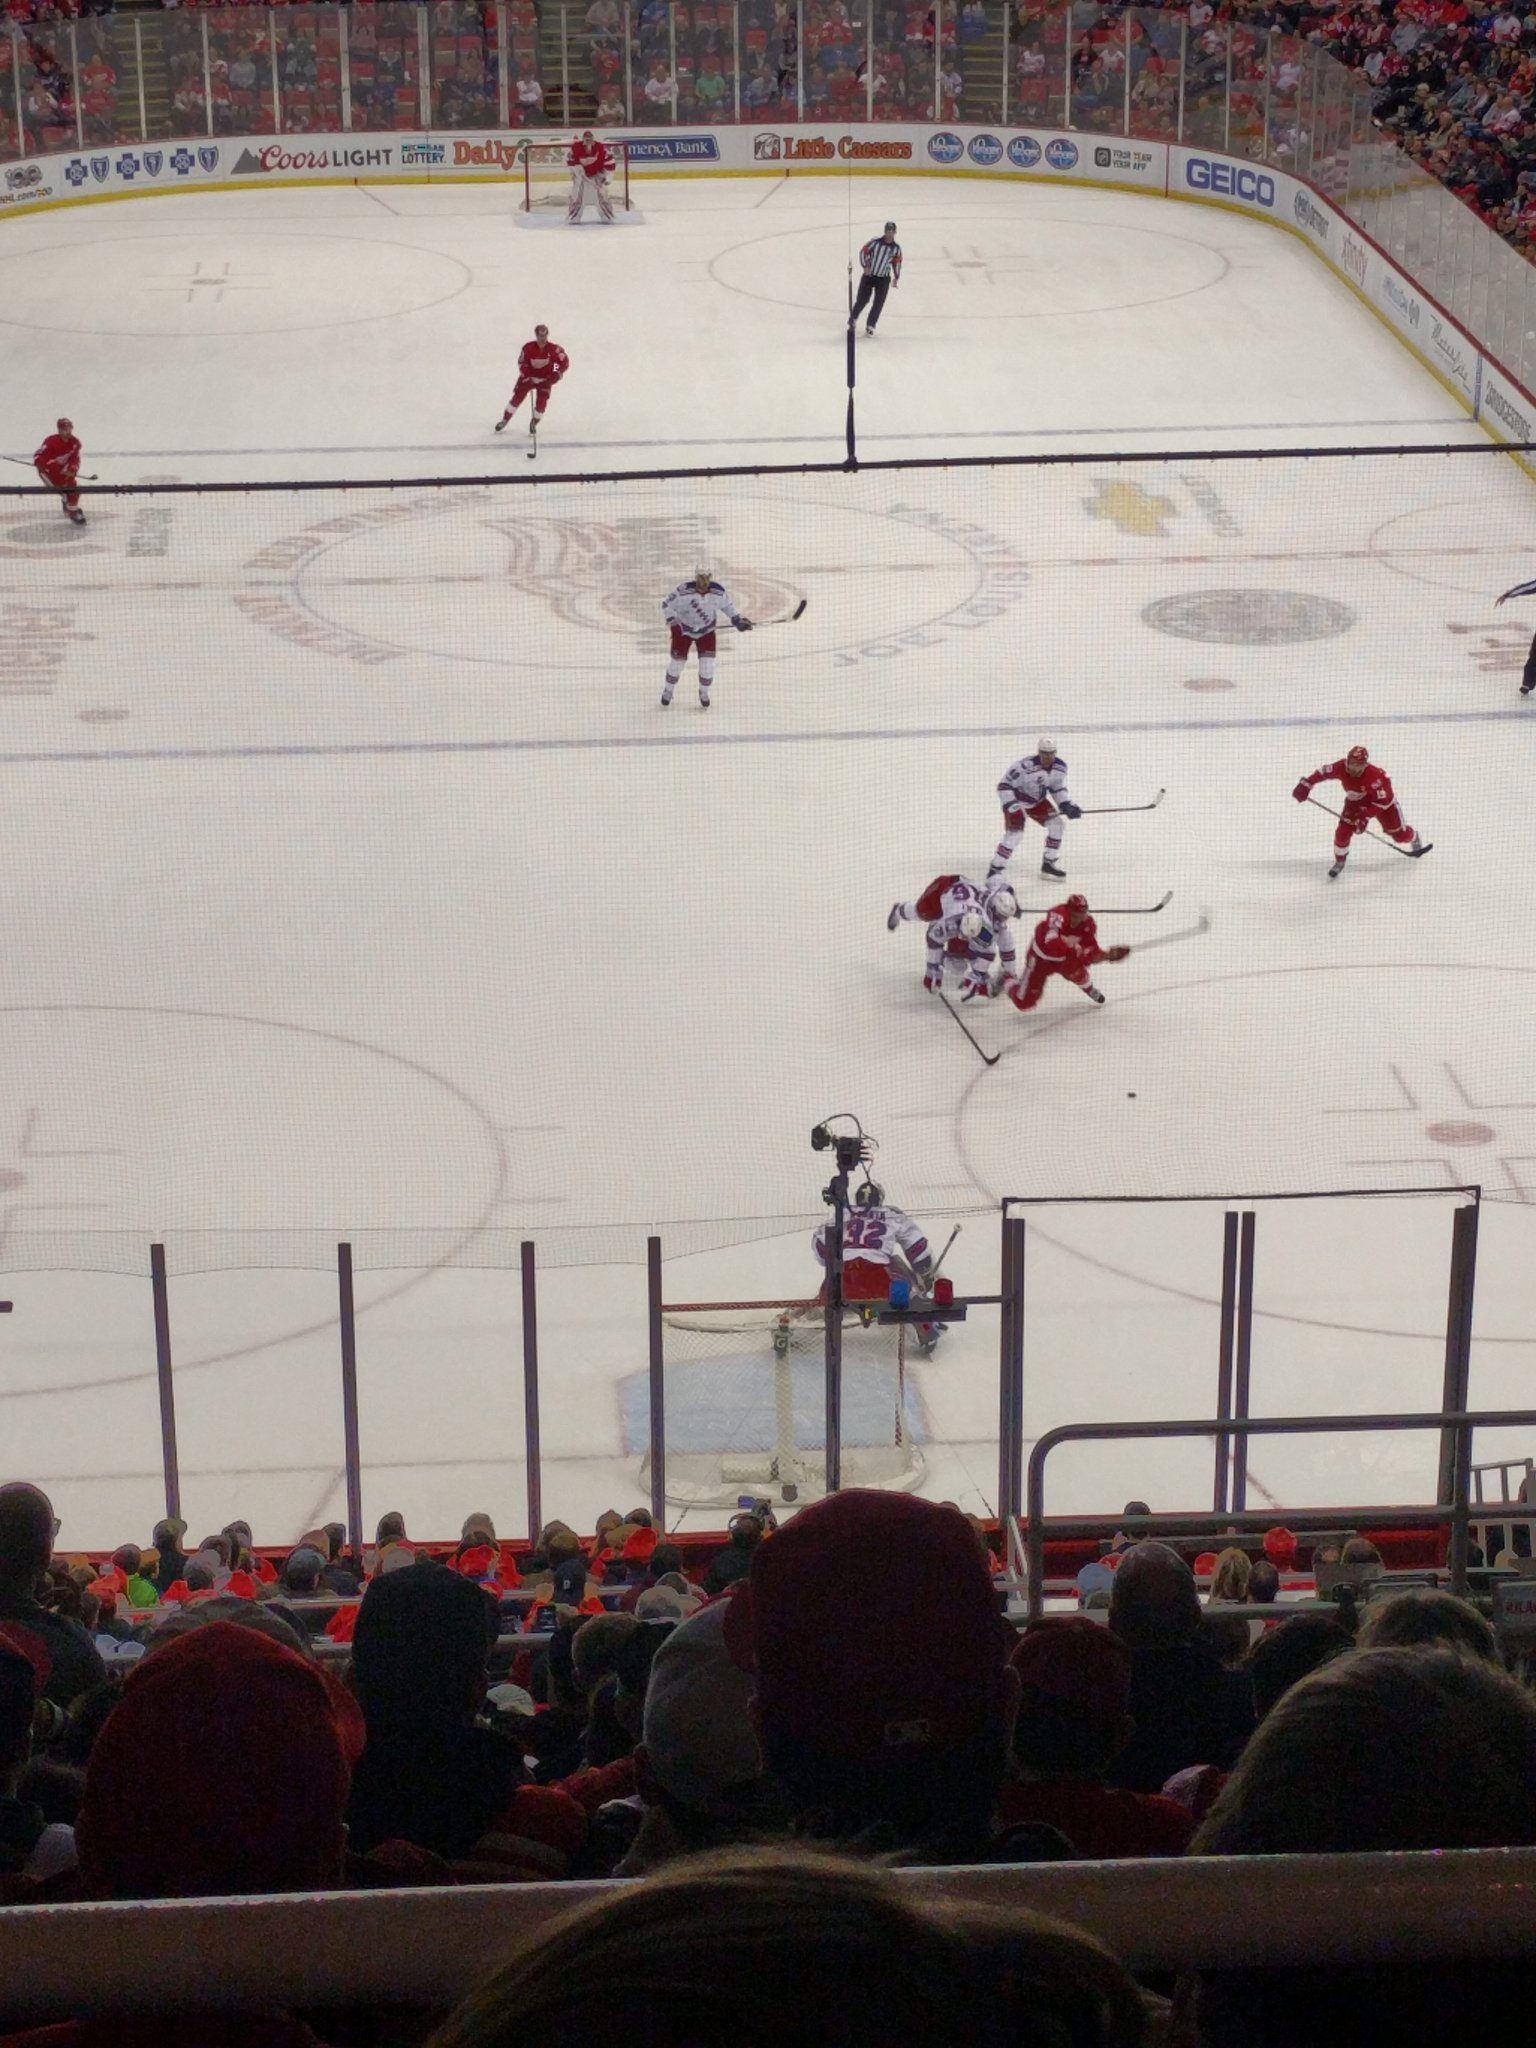 #RedWings #LGRW #powerplay Penalty against NY Rangers.  Tripping NY just scored.  Booo https://t.co/MJv12ne20X